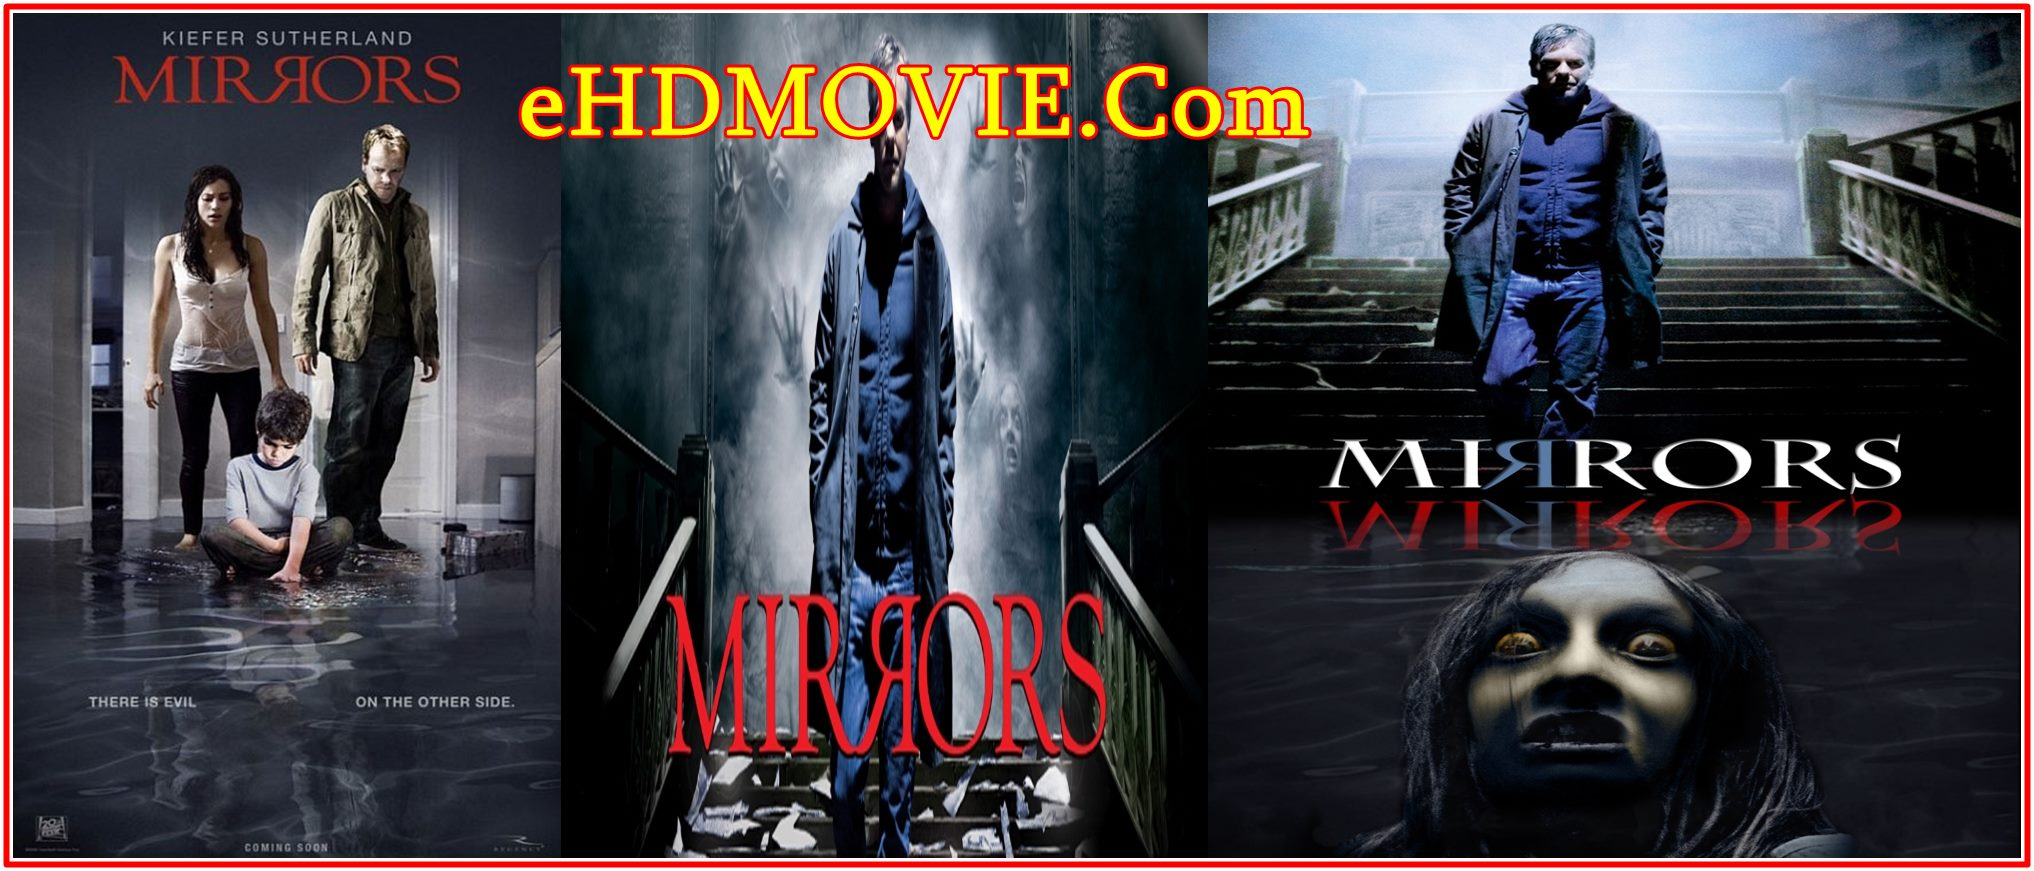 Mirrors 2008 Full Movie English 720p – 480p ORG BRRip 350MB – 800MB ESubs Free Download